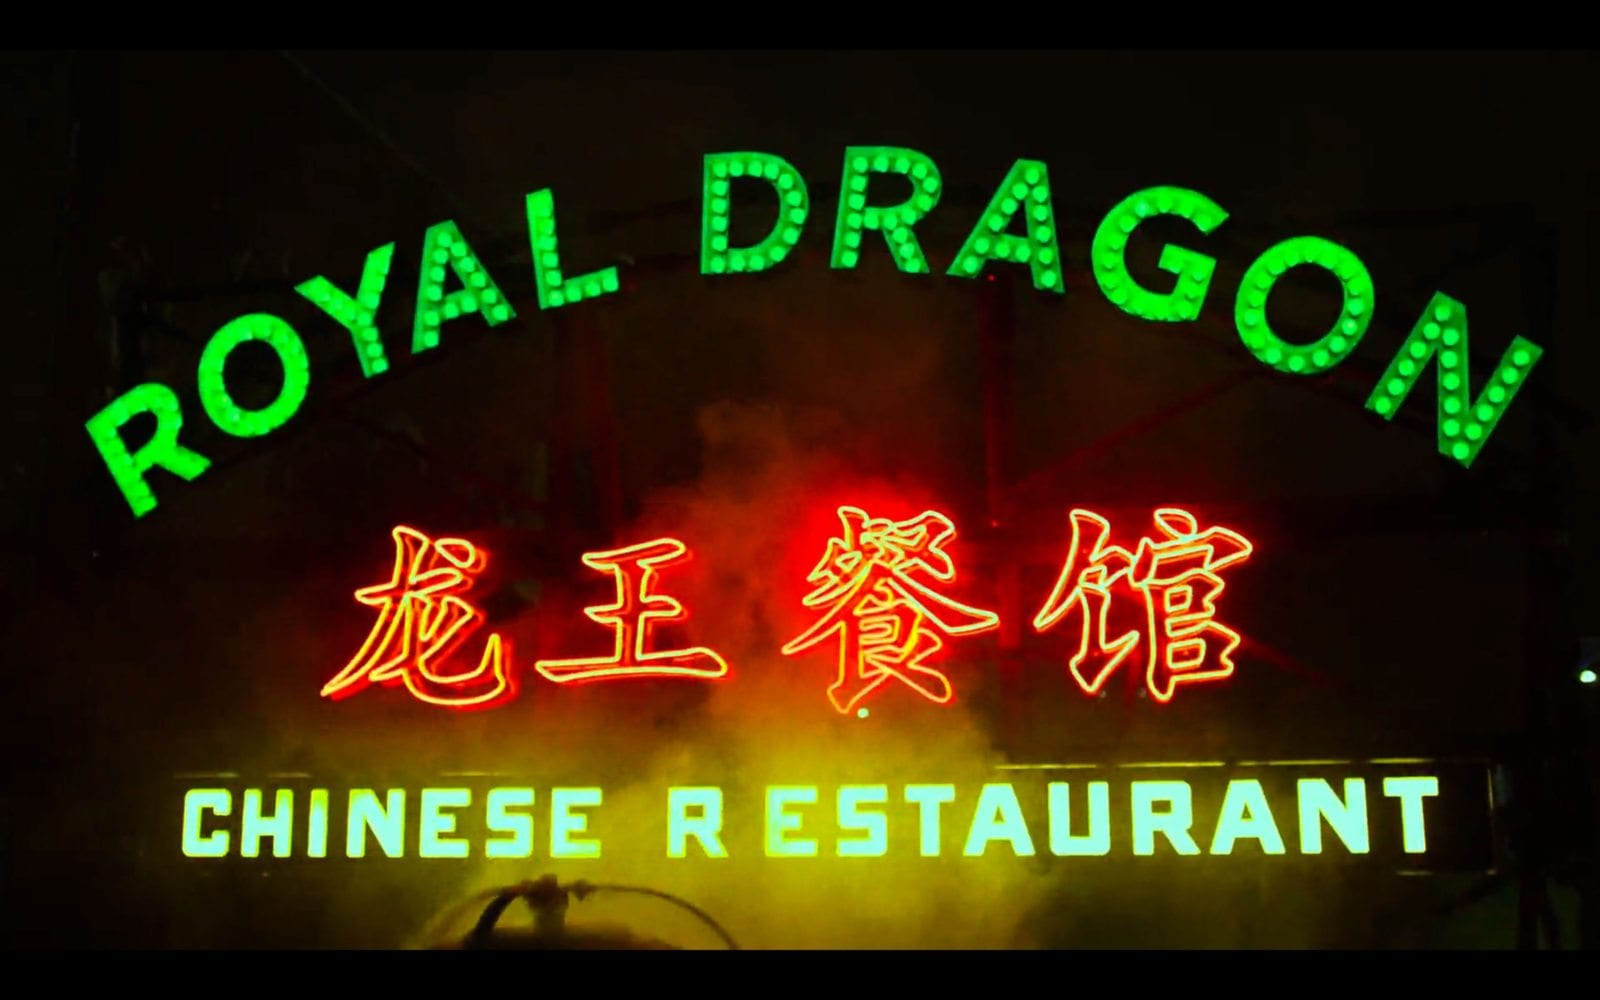 Royal Dragon Chinese Restaurant